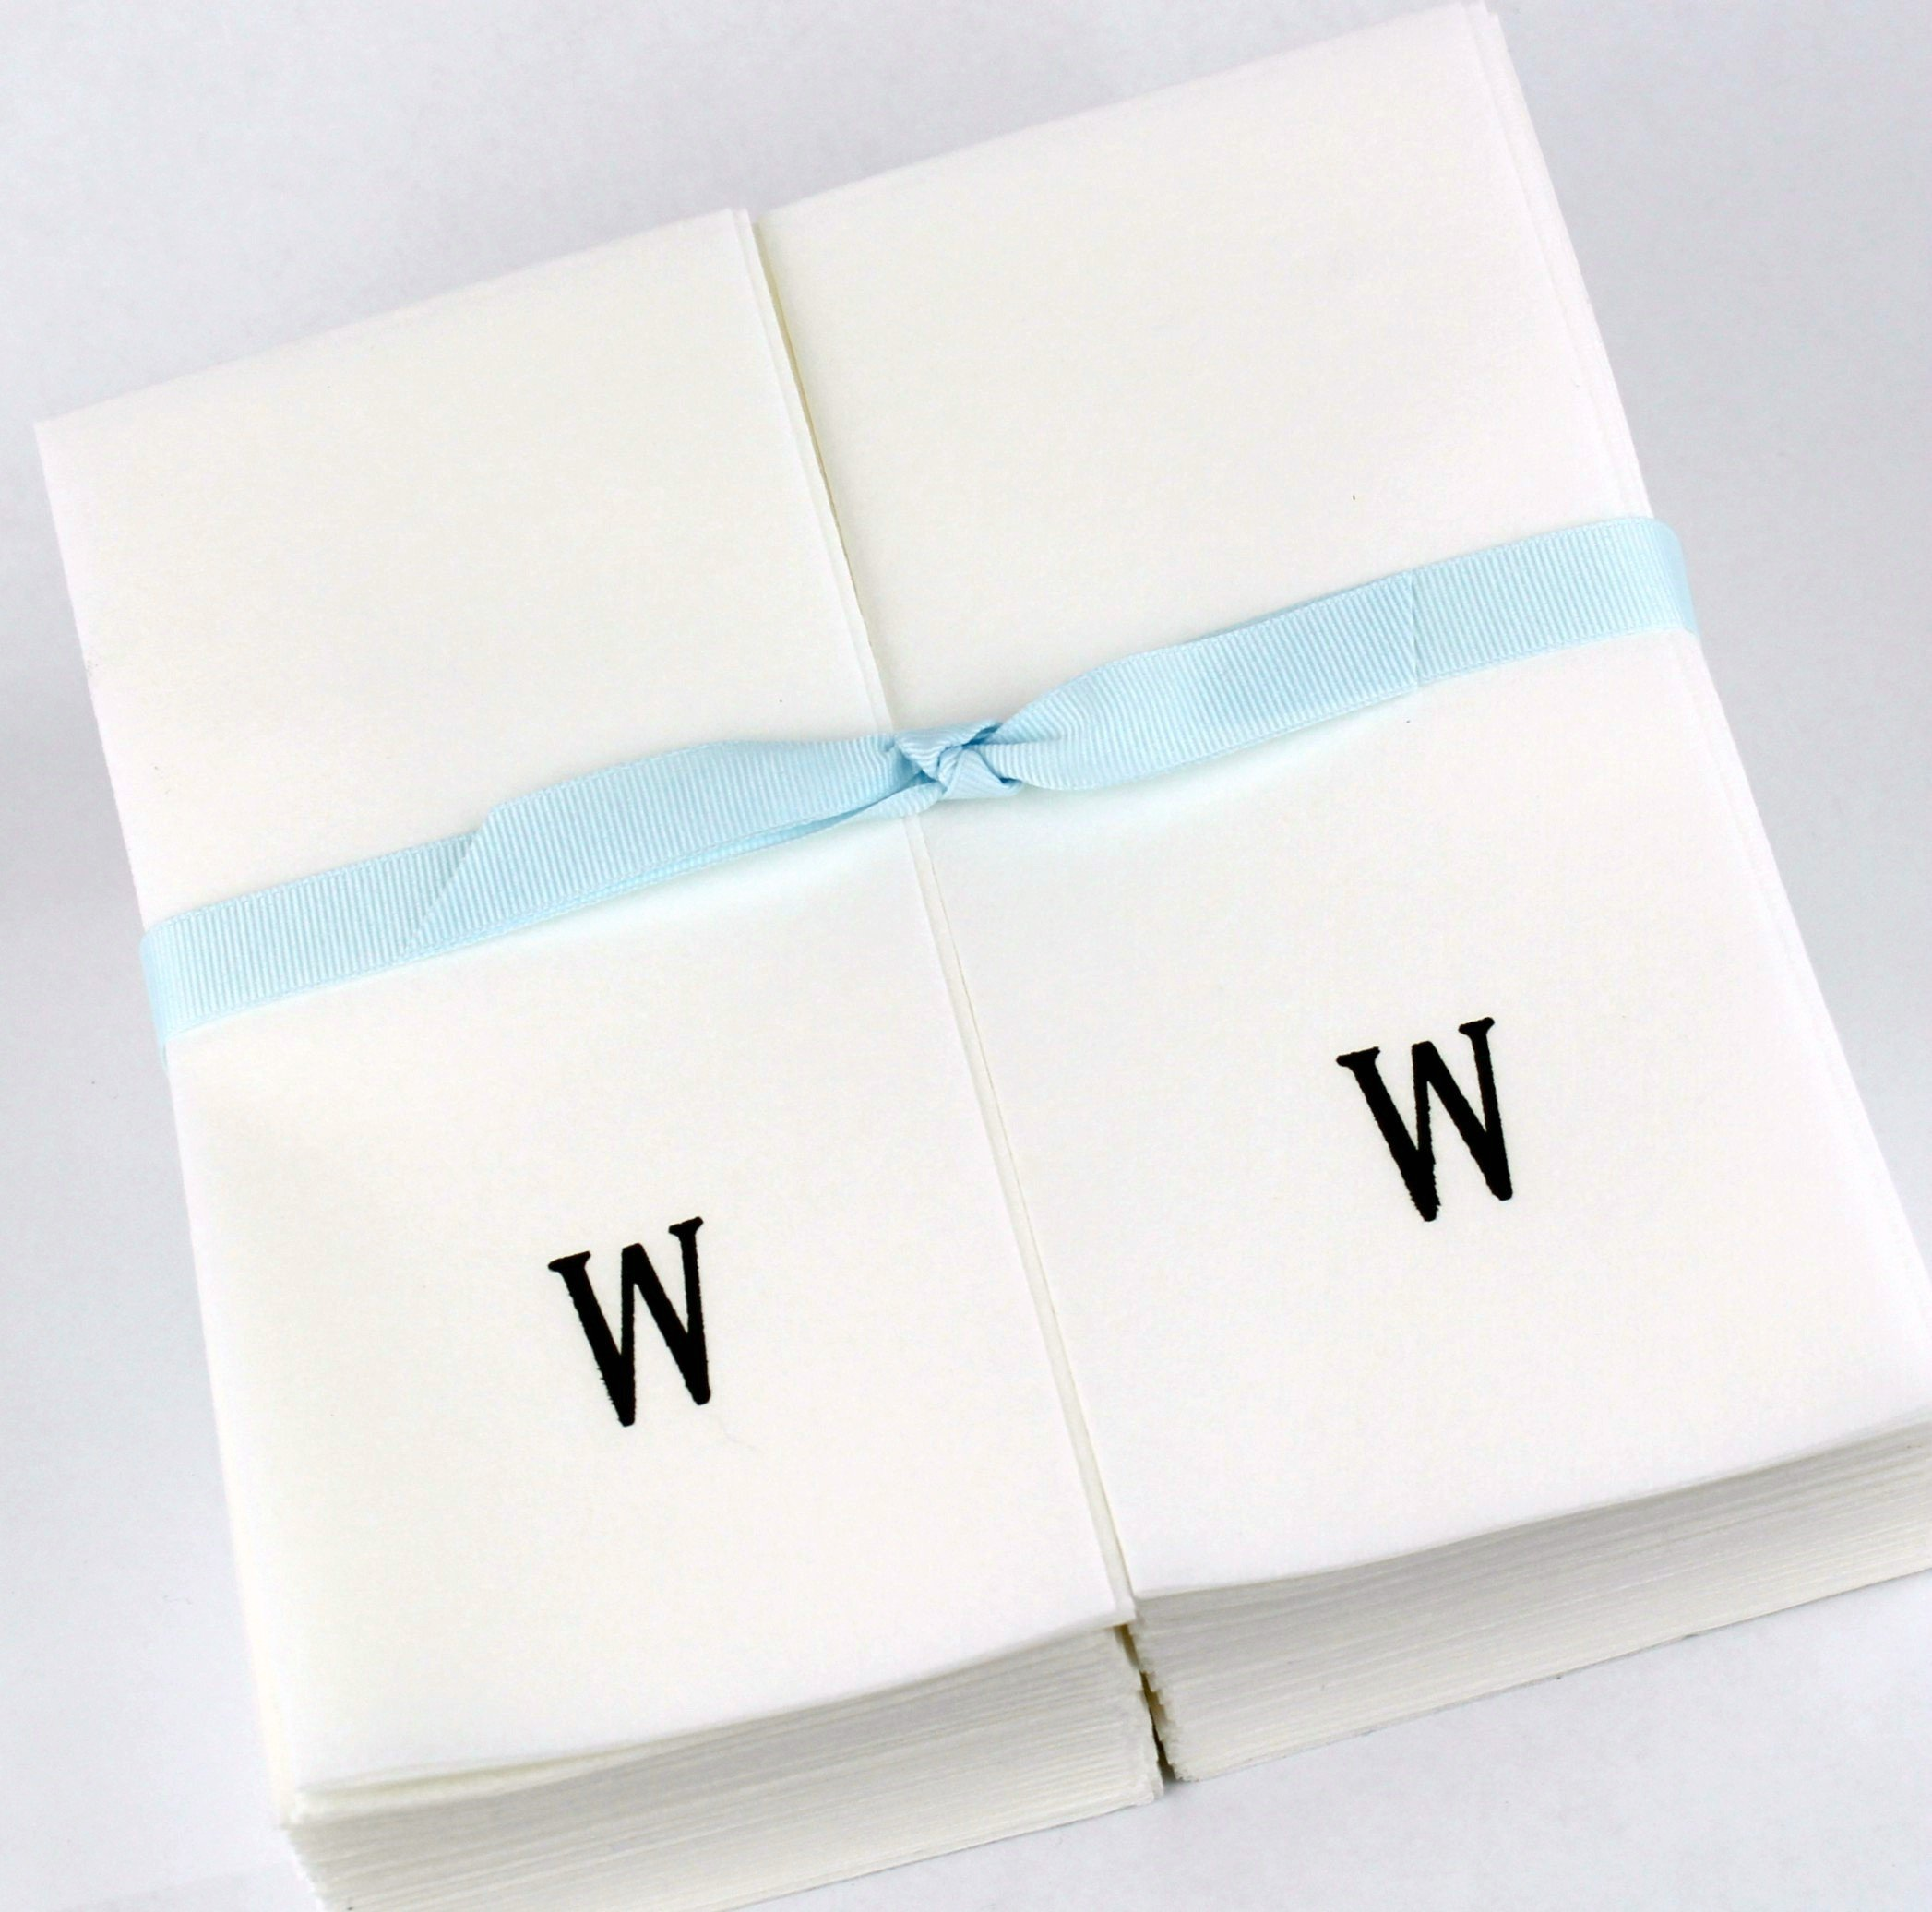 Disposable Nature's Linen Guest Hand Towels with a Ribbon - Personalized with a Black Single Block Initial - W - 100ct.